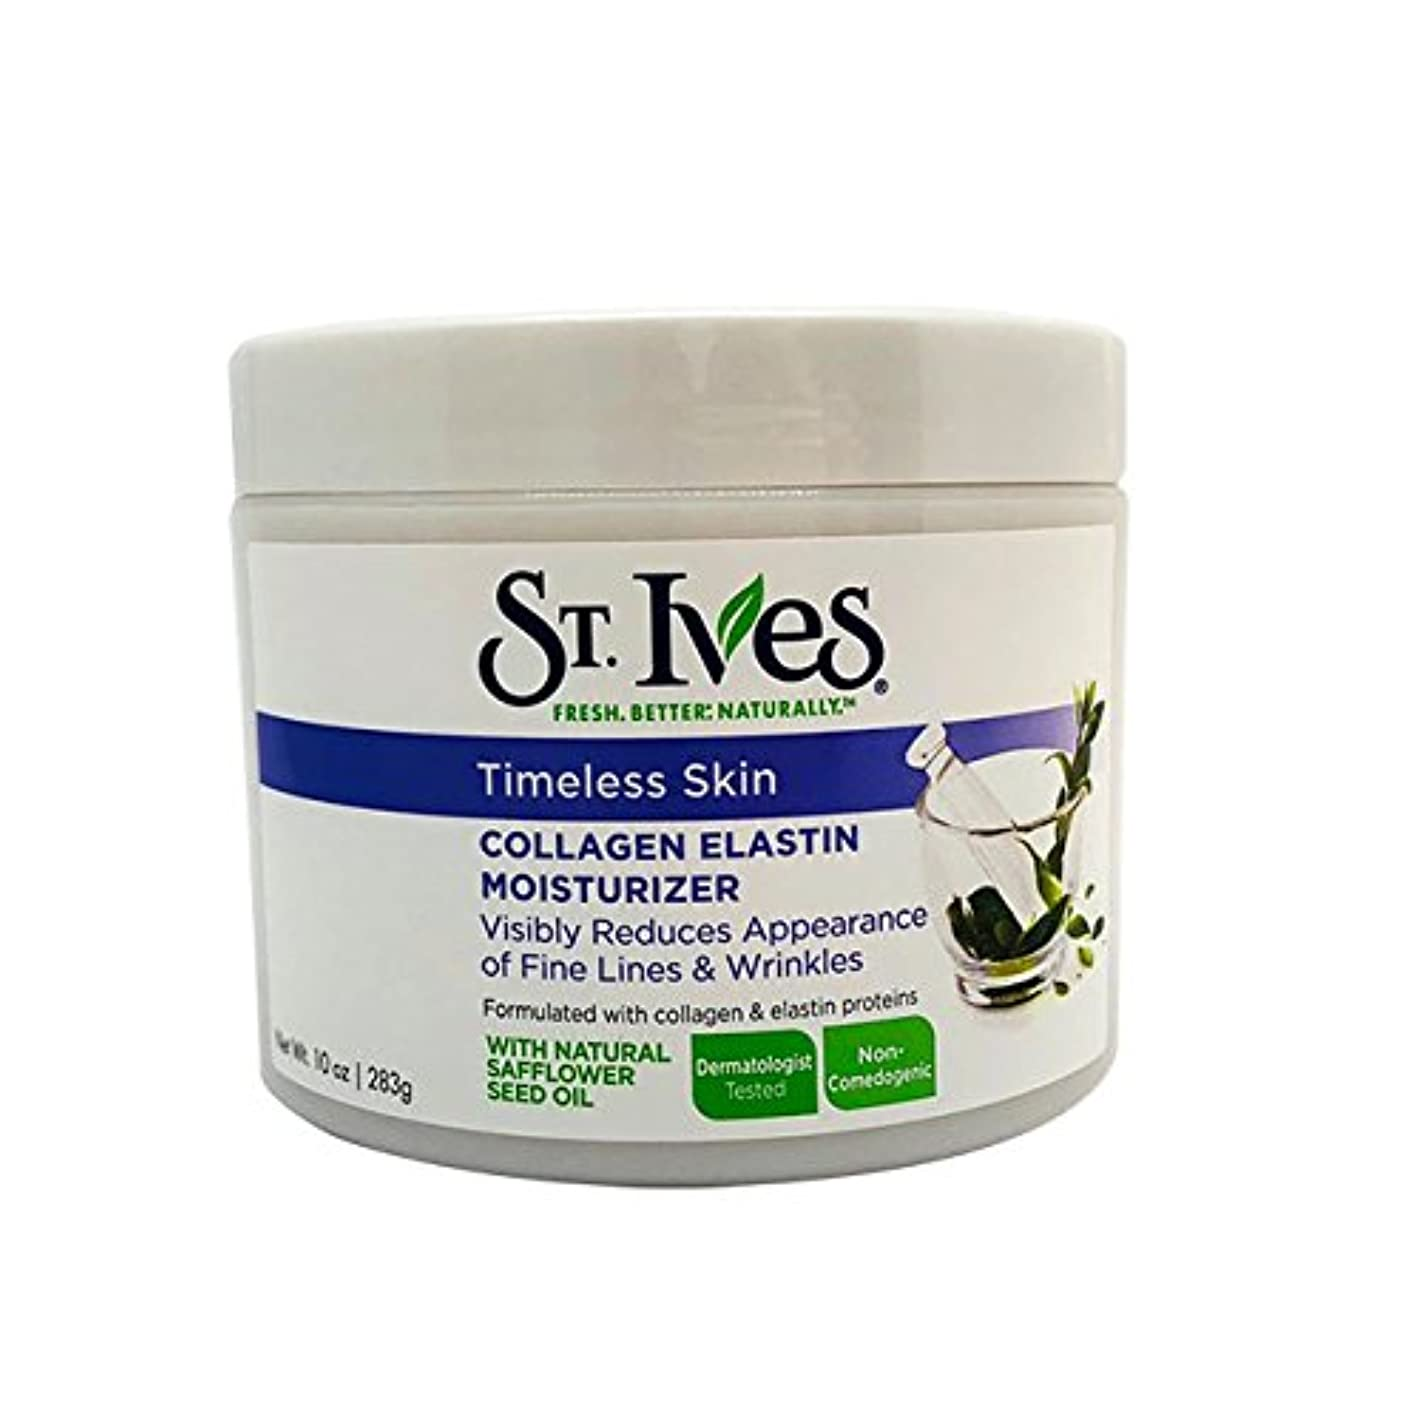 血統パース論争的St. Ives Facial Moisturizer, Timeless Skin Collagen Elastin, 10oz by St. Ives [並行輸入品]